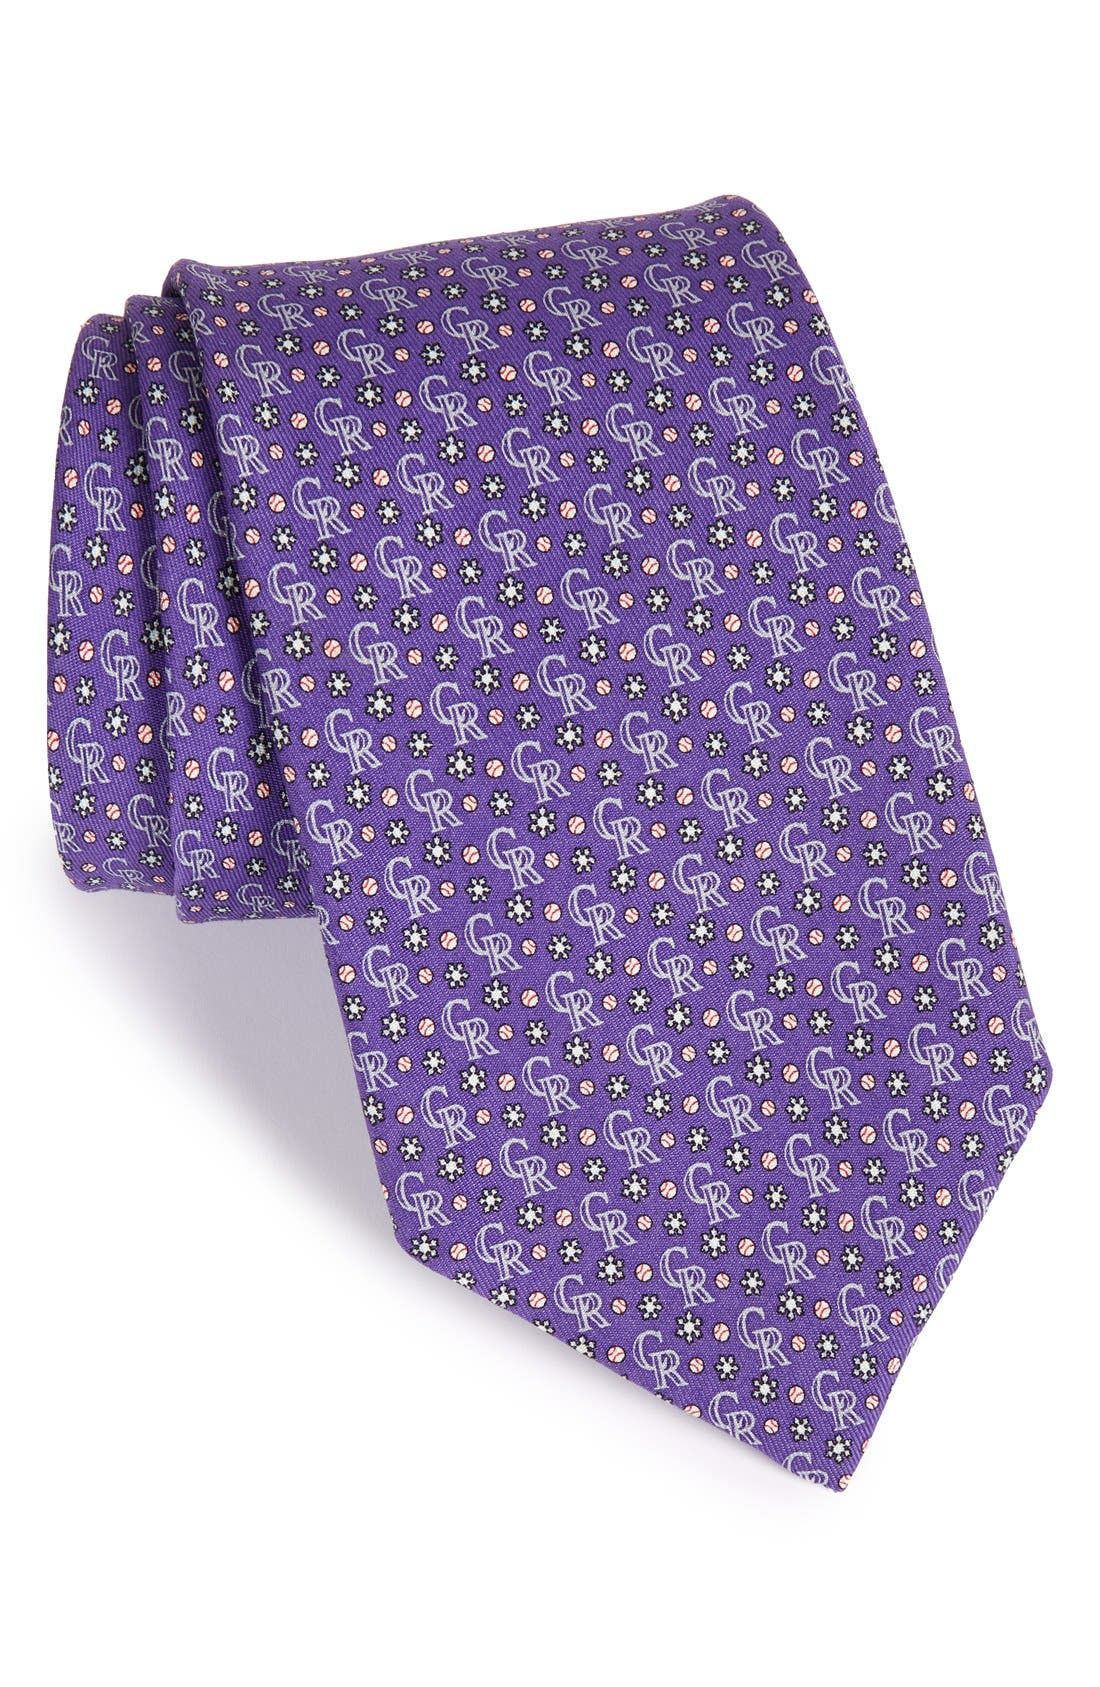 Main Image - Vineyard Vines 'Colorado Rockies' Woven Silk Tie